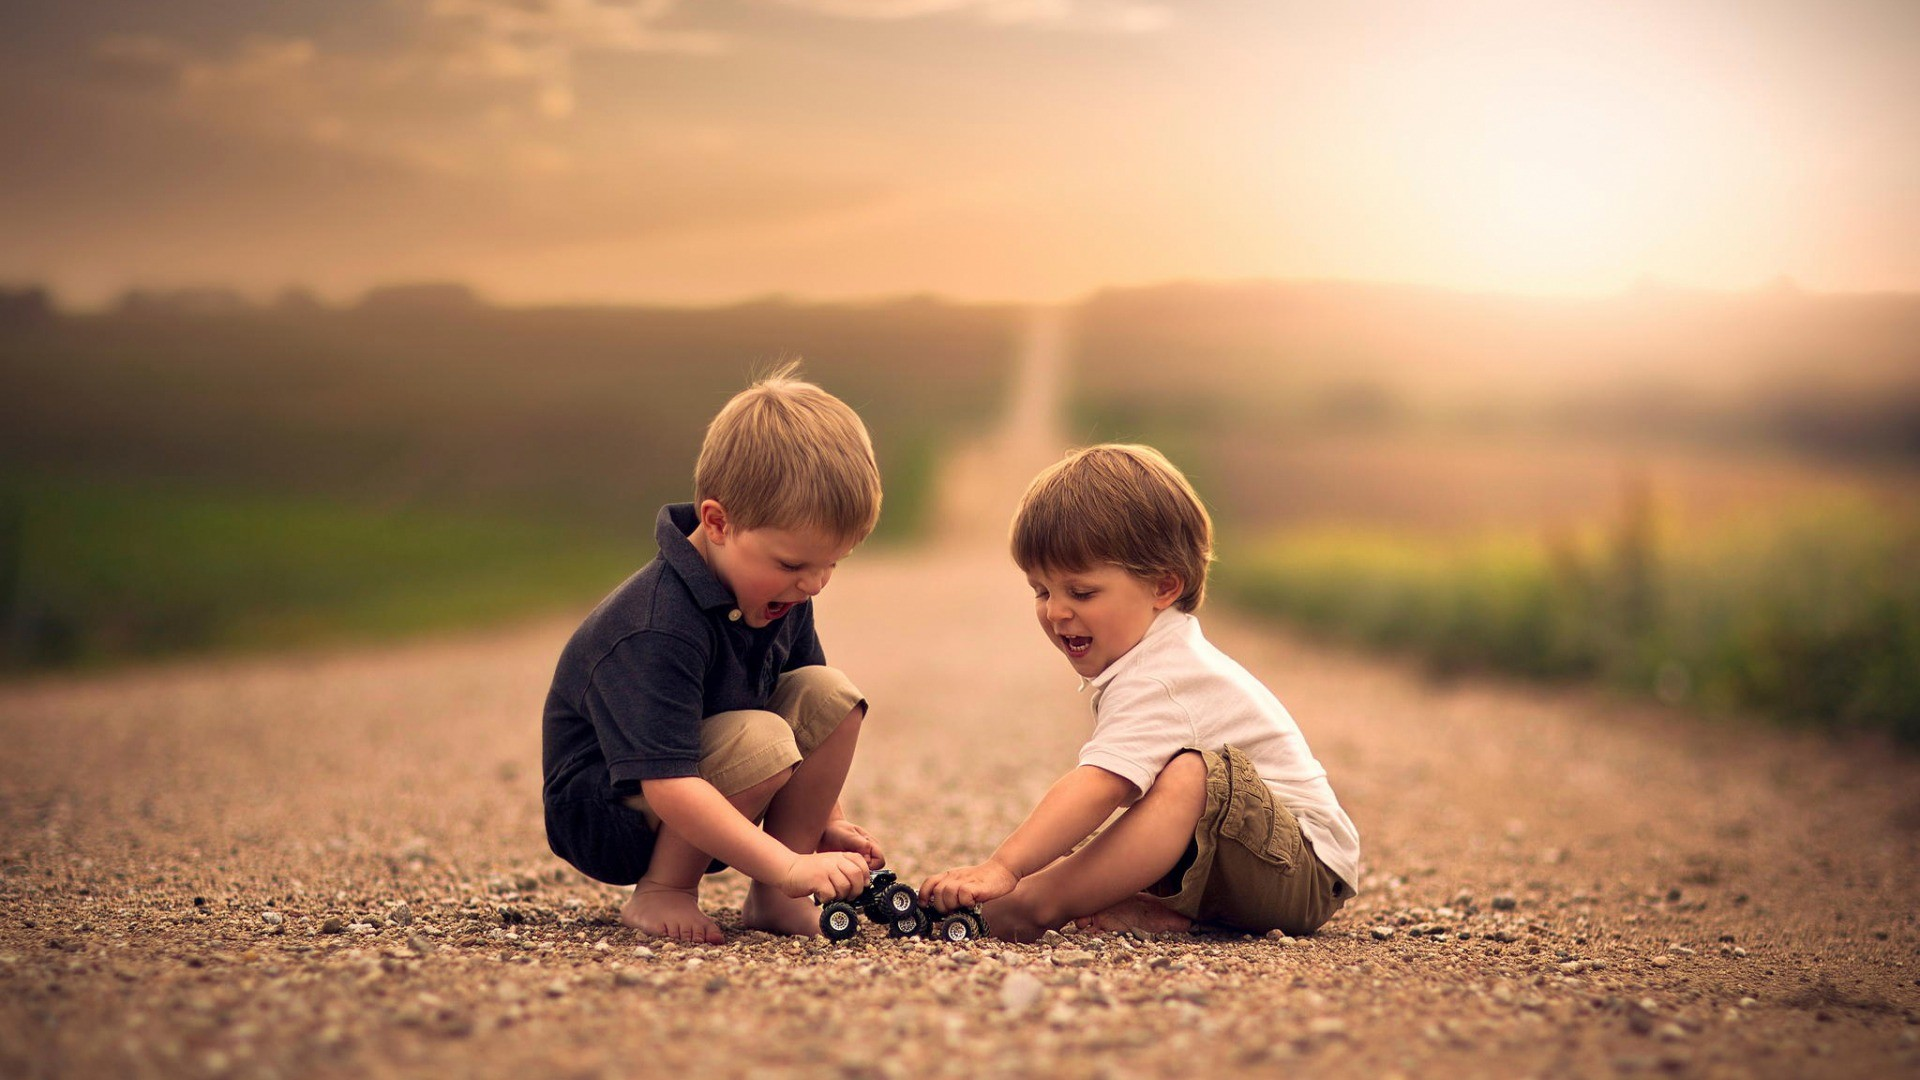 People 1920x1080 children road Jake Olson playing sunlight depth of field toys